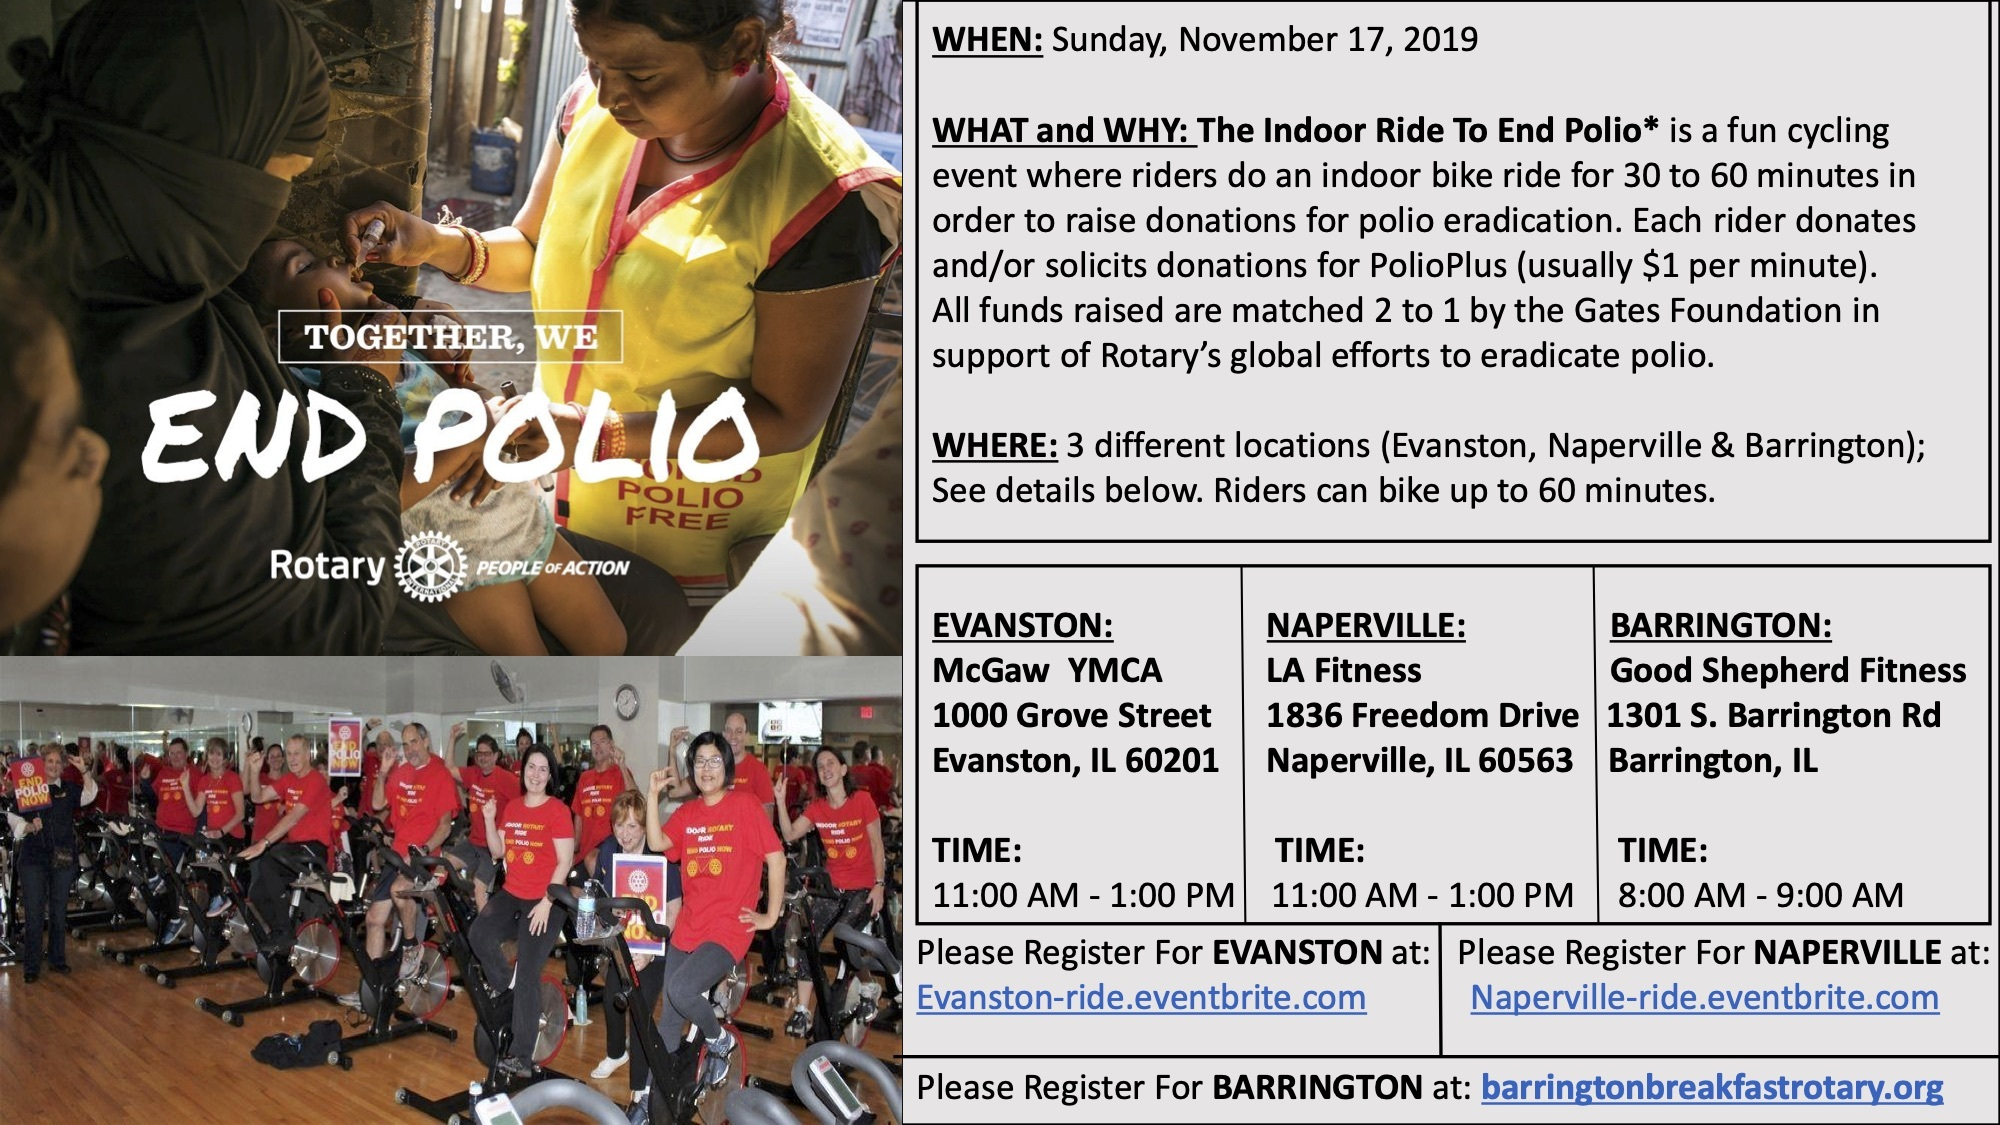 Indoor Ride to End Polio flyer